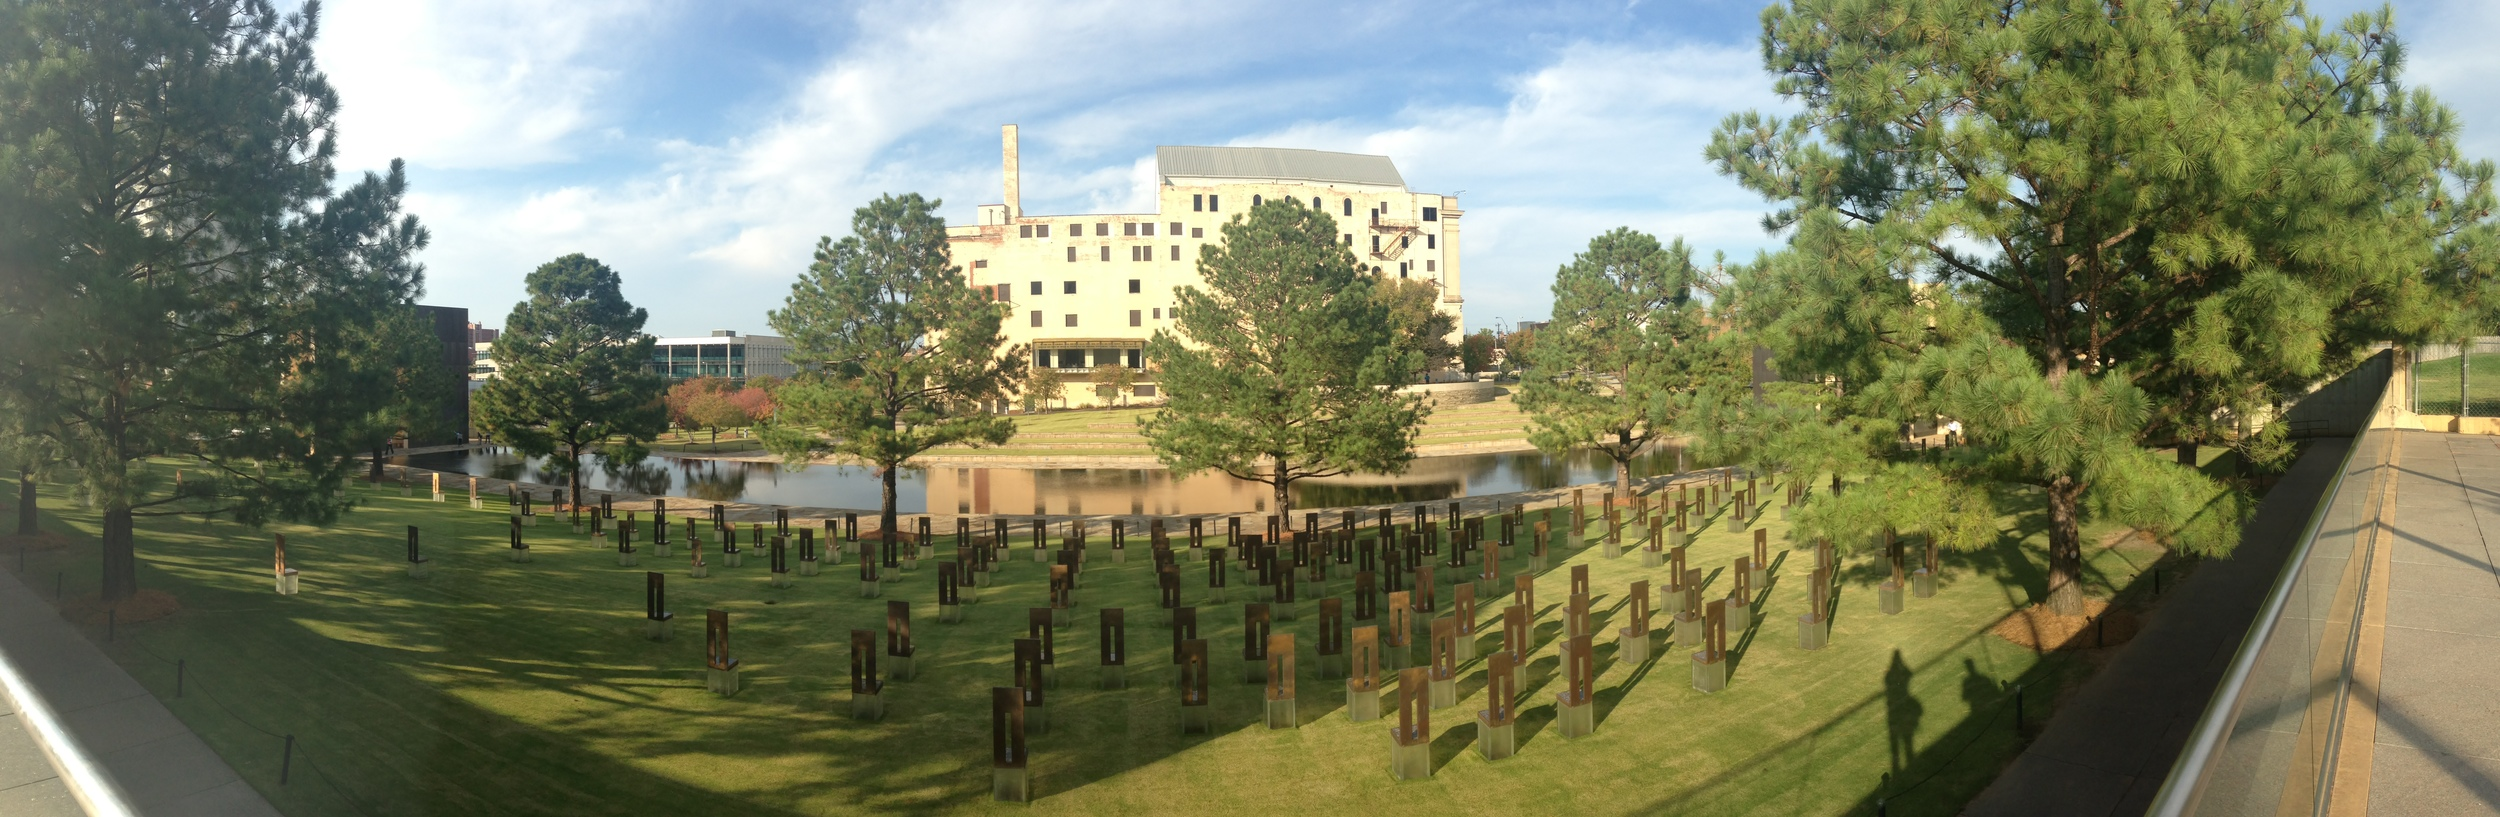 The Oklahoma City National Memorial and Museum (housed in the former Journal Record Building), taken from the Alfred P. Murrah Plaza - the still extant plaza for the Murrah Federal Building. Photograph by Andrei Strizek.